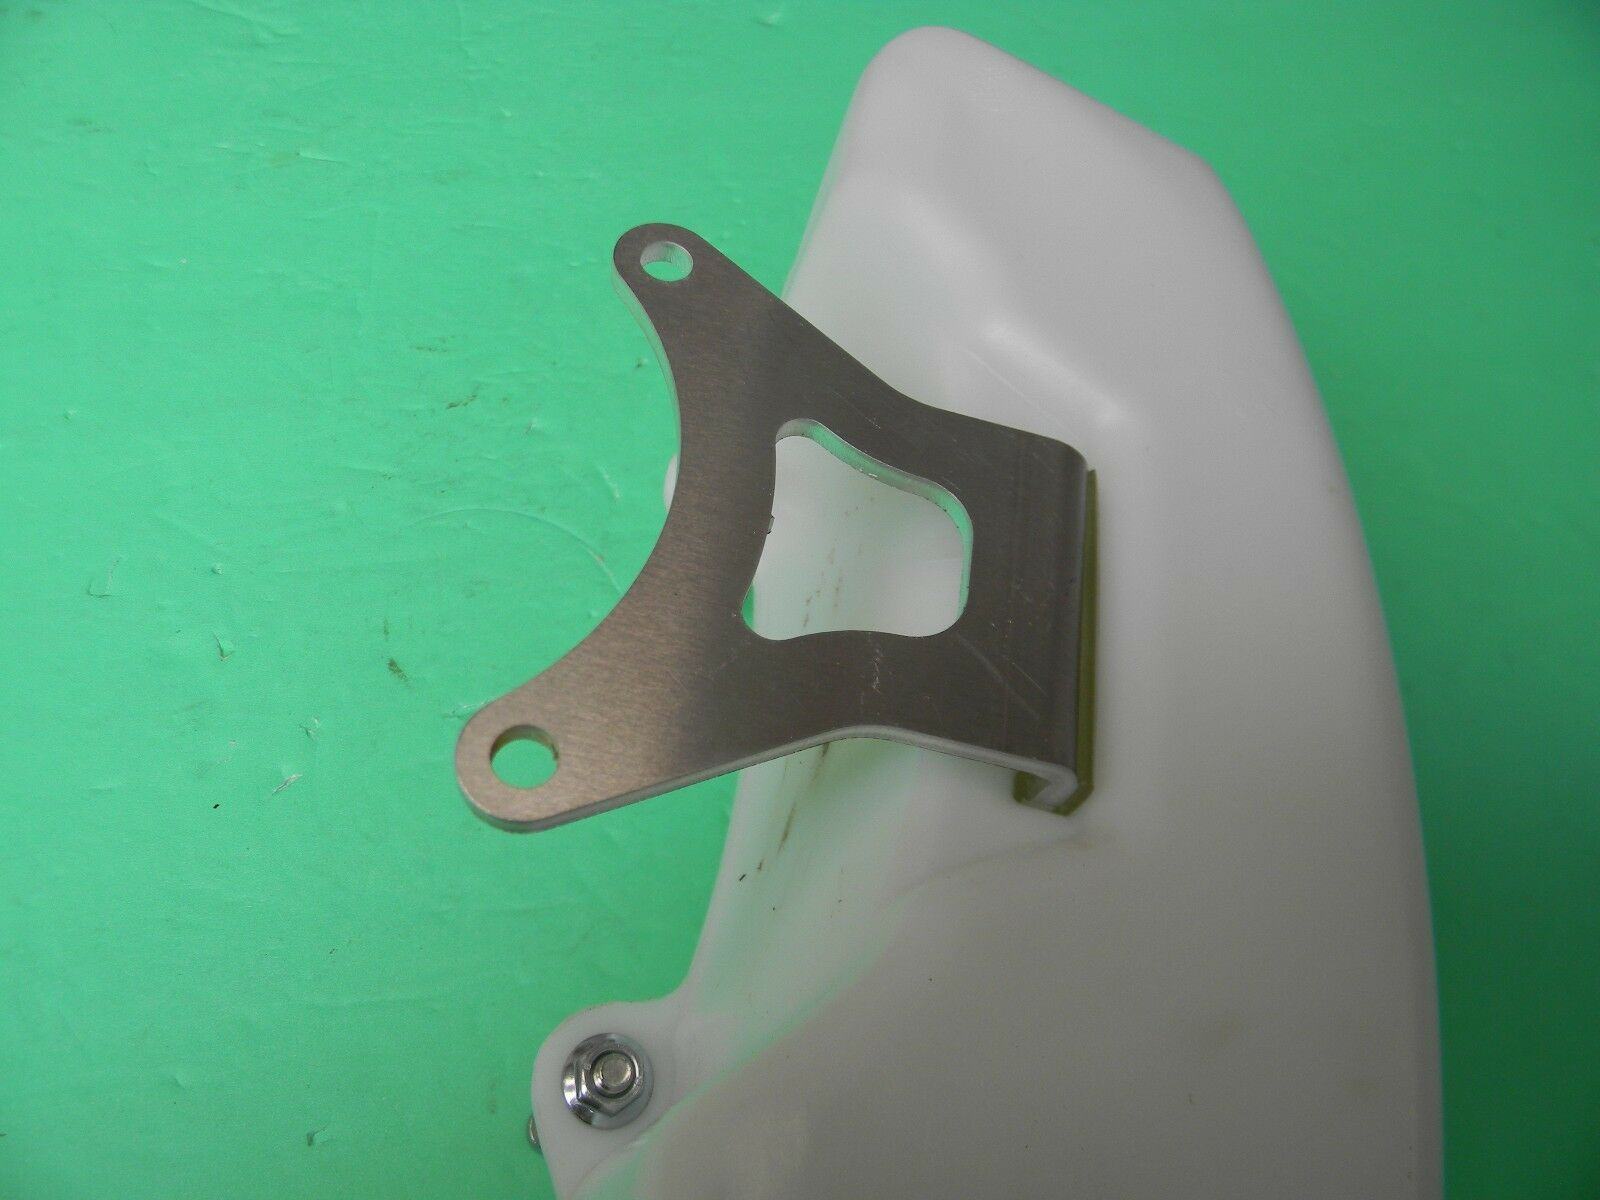 RETRO FIT GAS FUEL TANK For STIHL FS81   TRIMMER REPLACES # 4126 350 0400 US